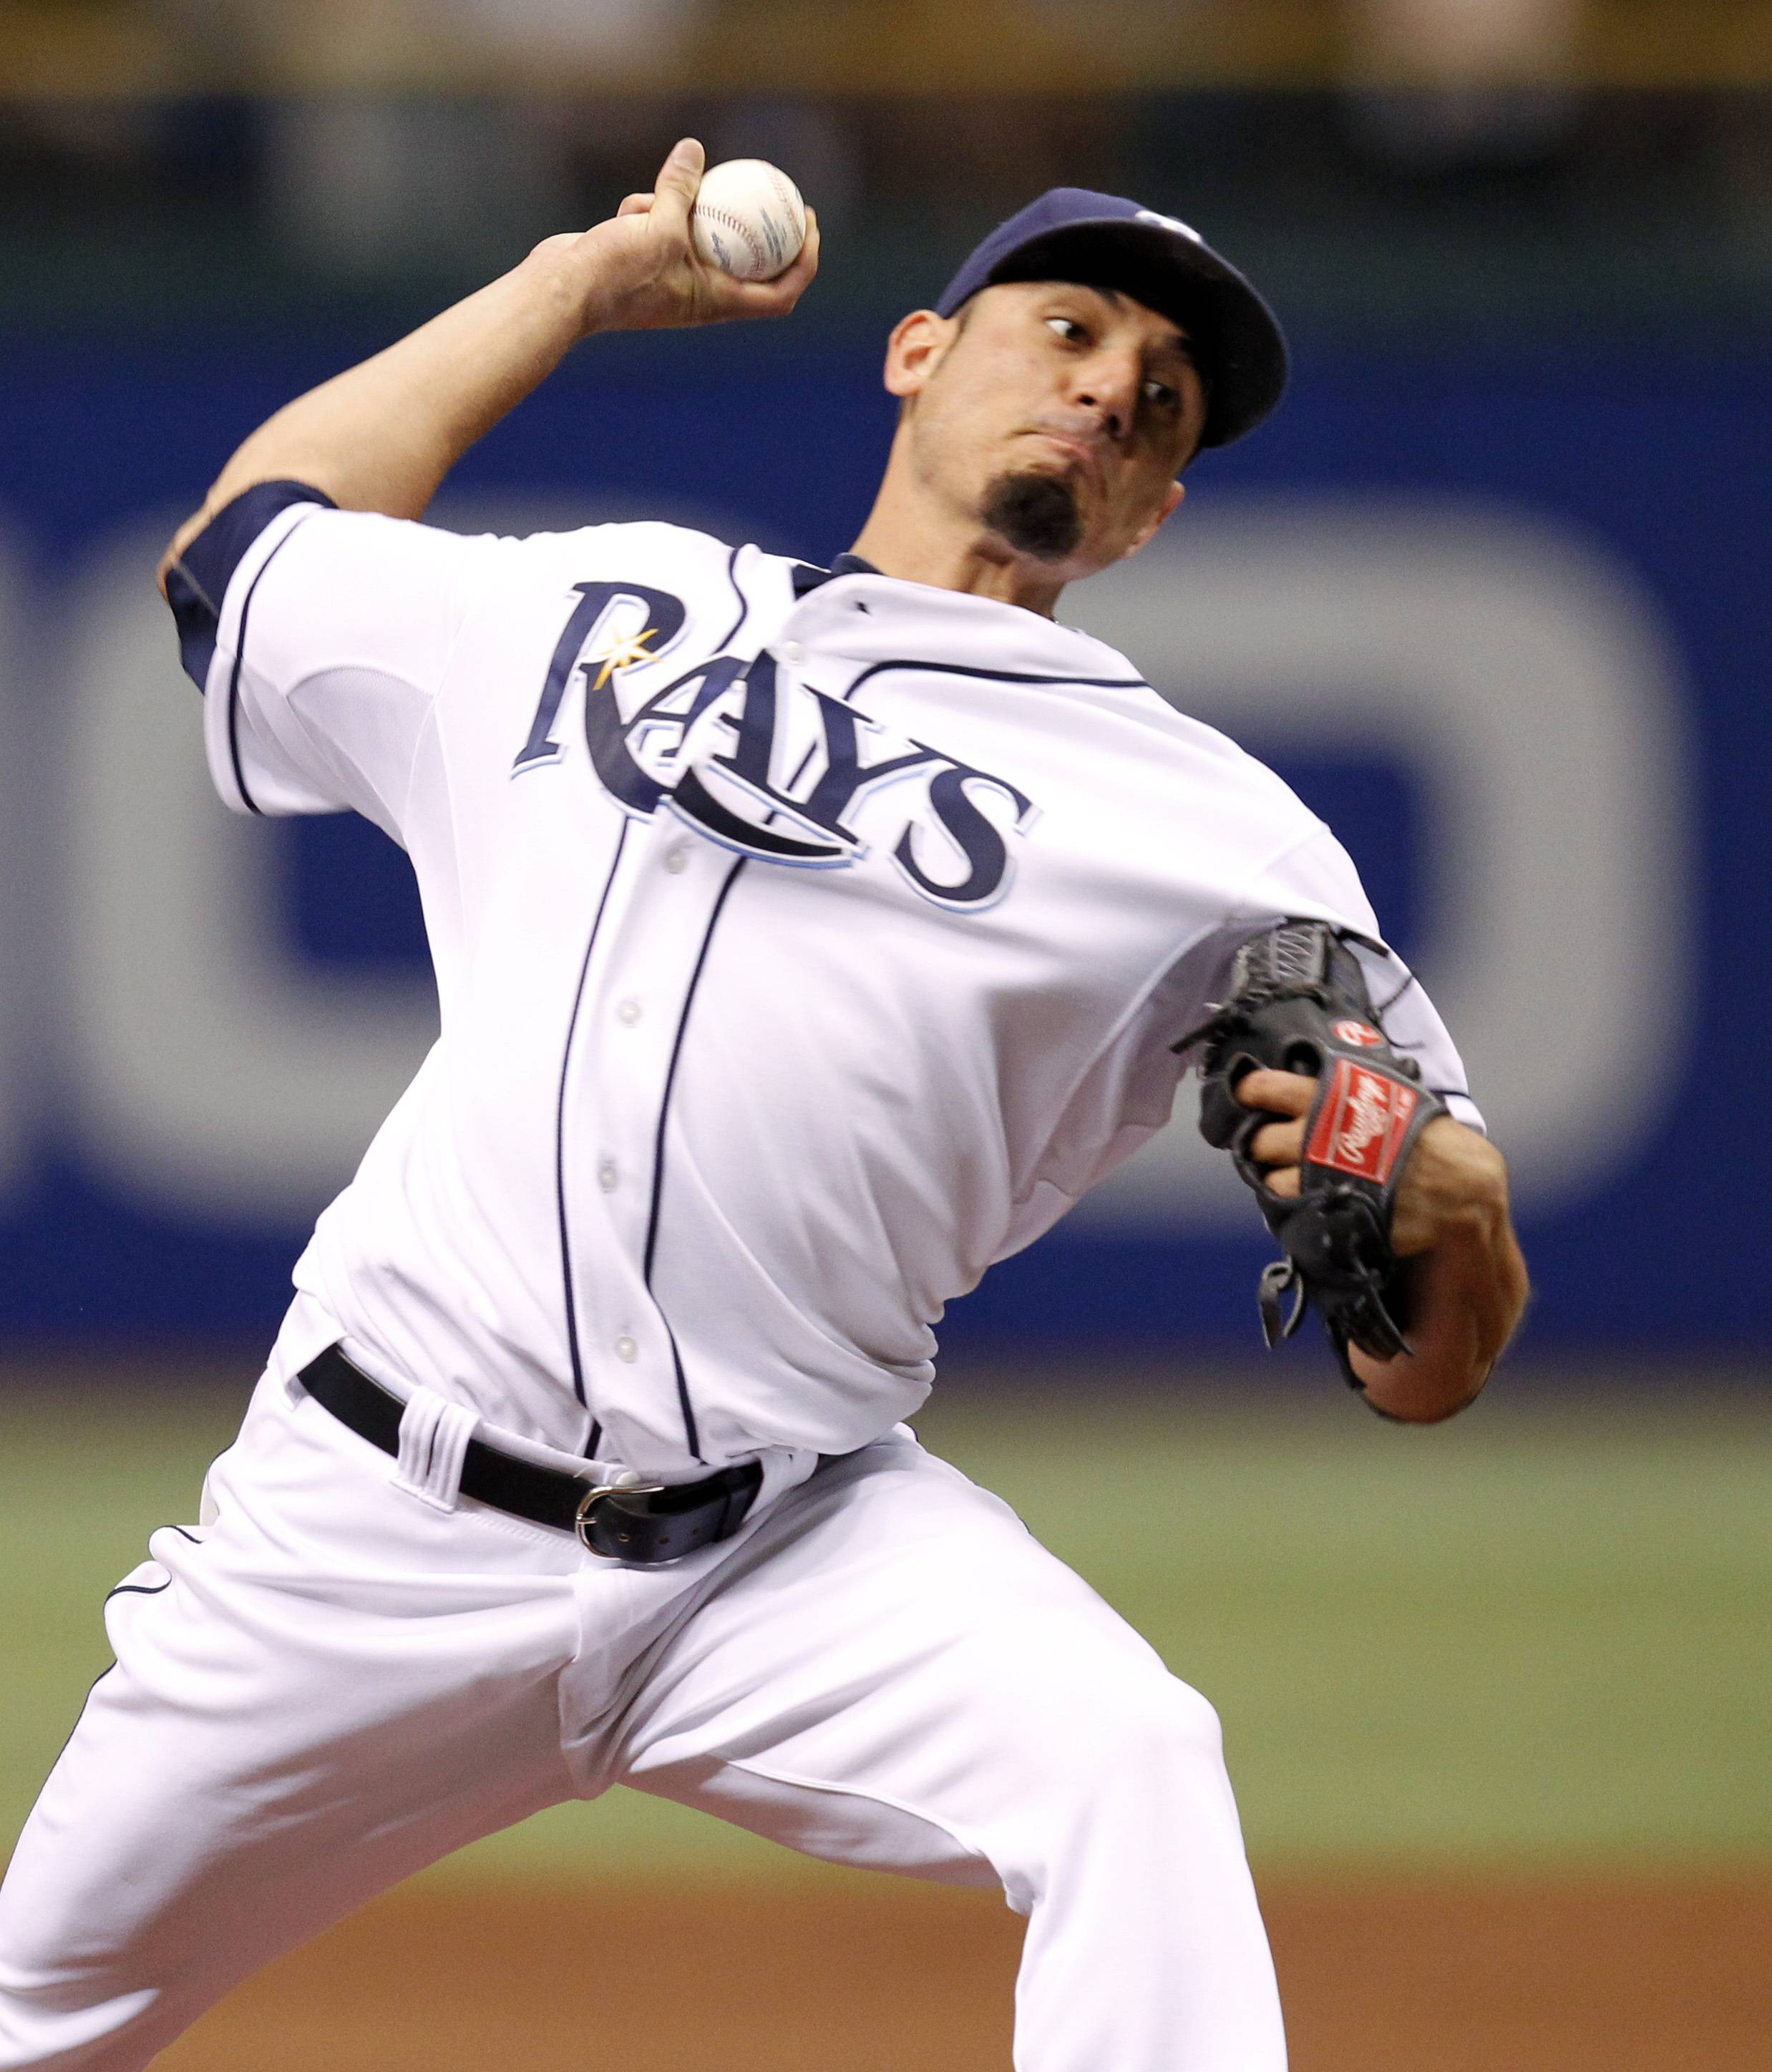 Matt Garza pitched the first no-hitter in Tampa Bay Rays history.